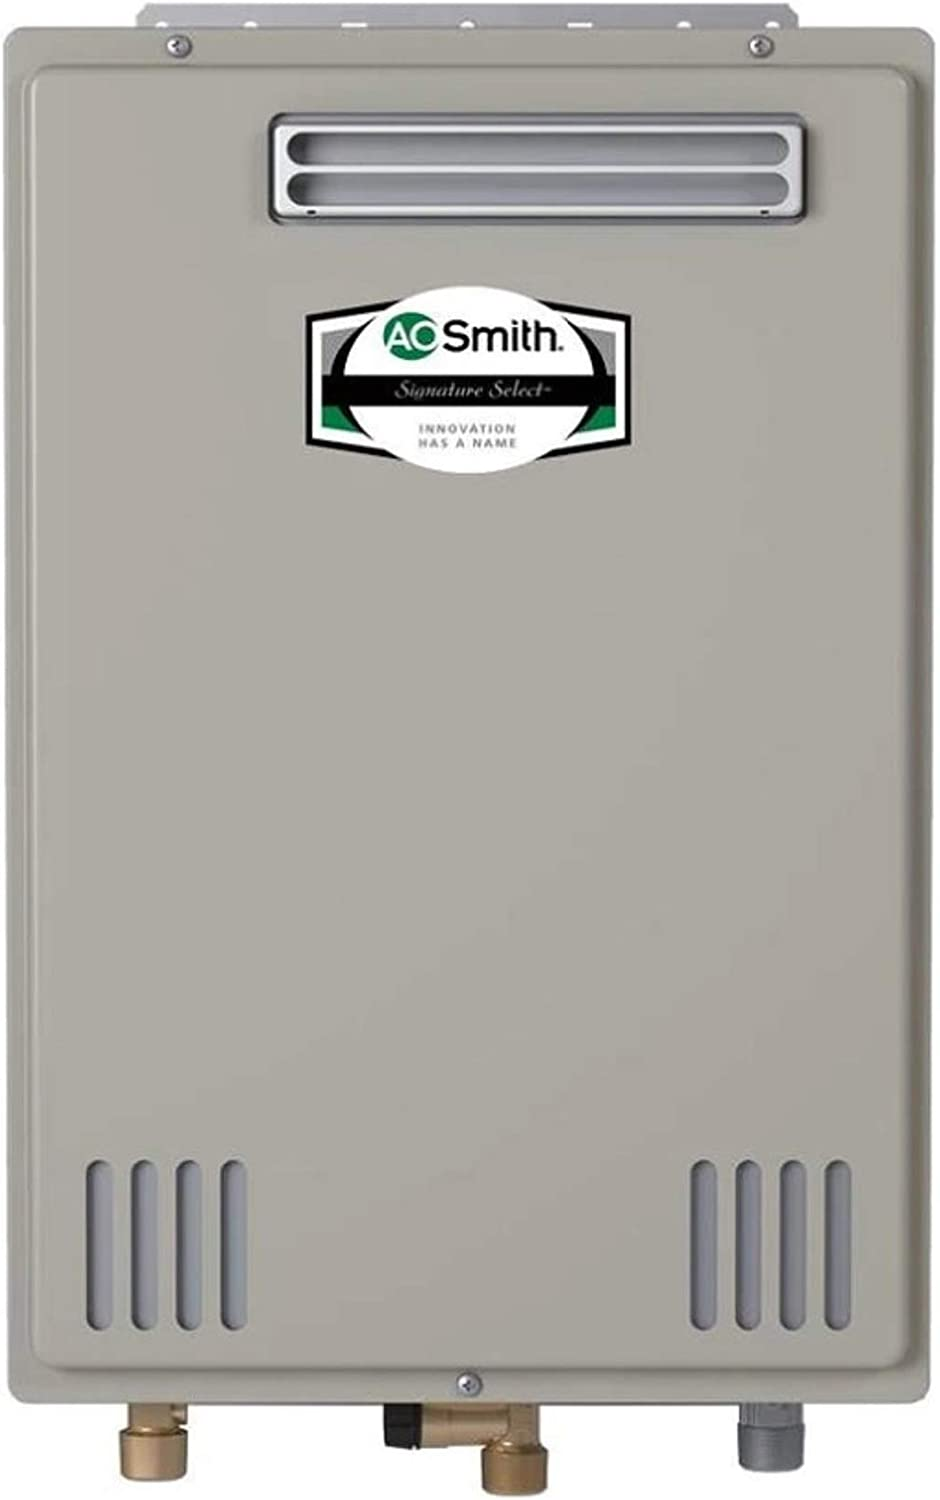 A.O. Smith Signature Select 8-GPM 190000-BTU Outdoor Natural Gas Tankless Water Heater